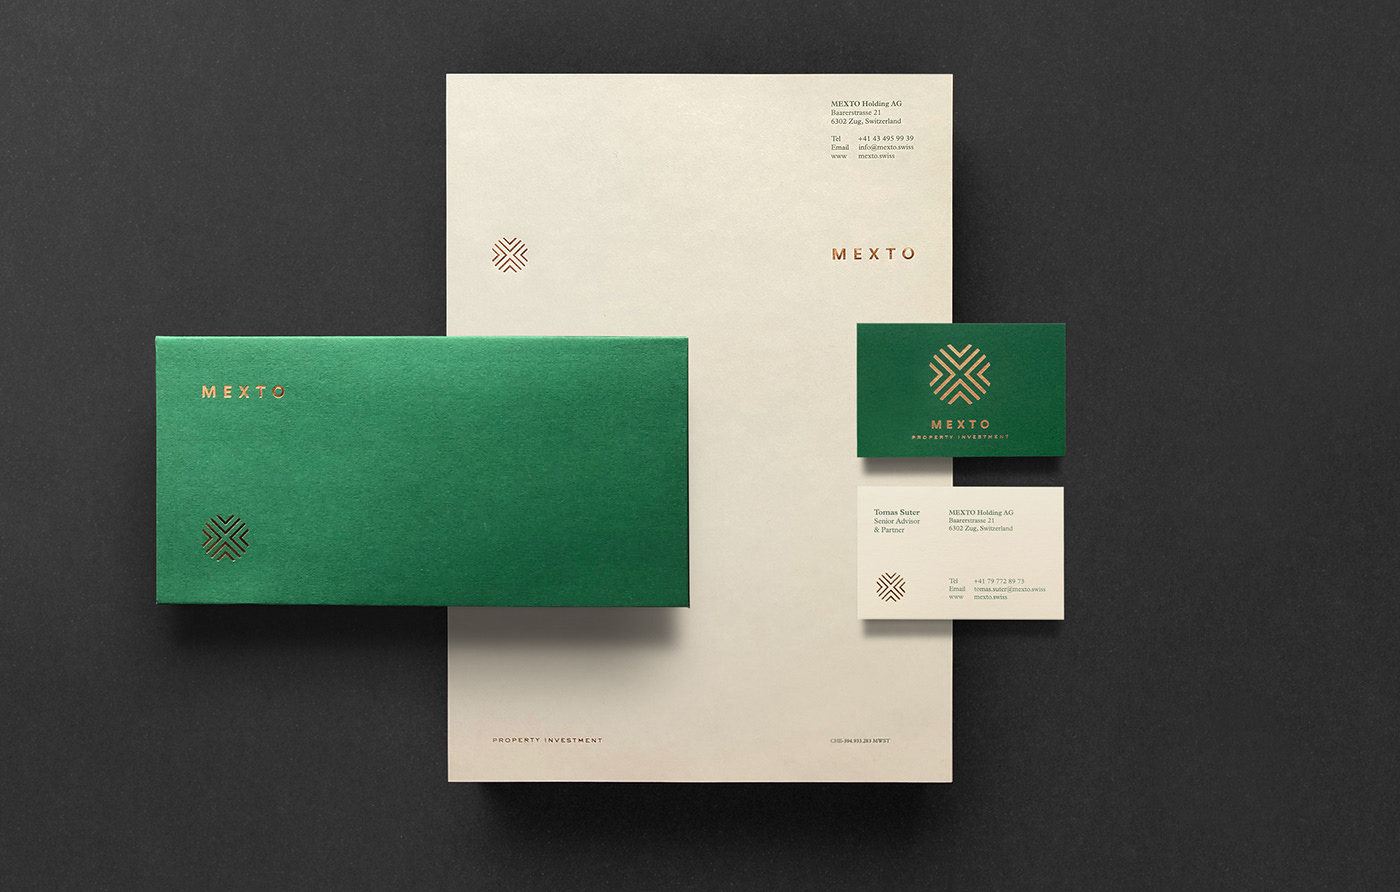 Mexto stationery